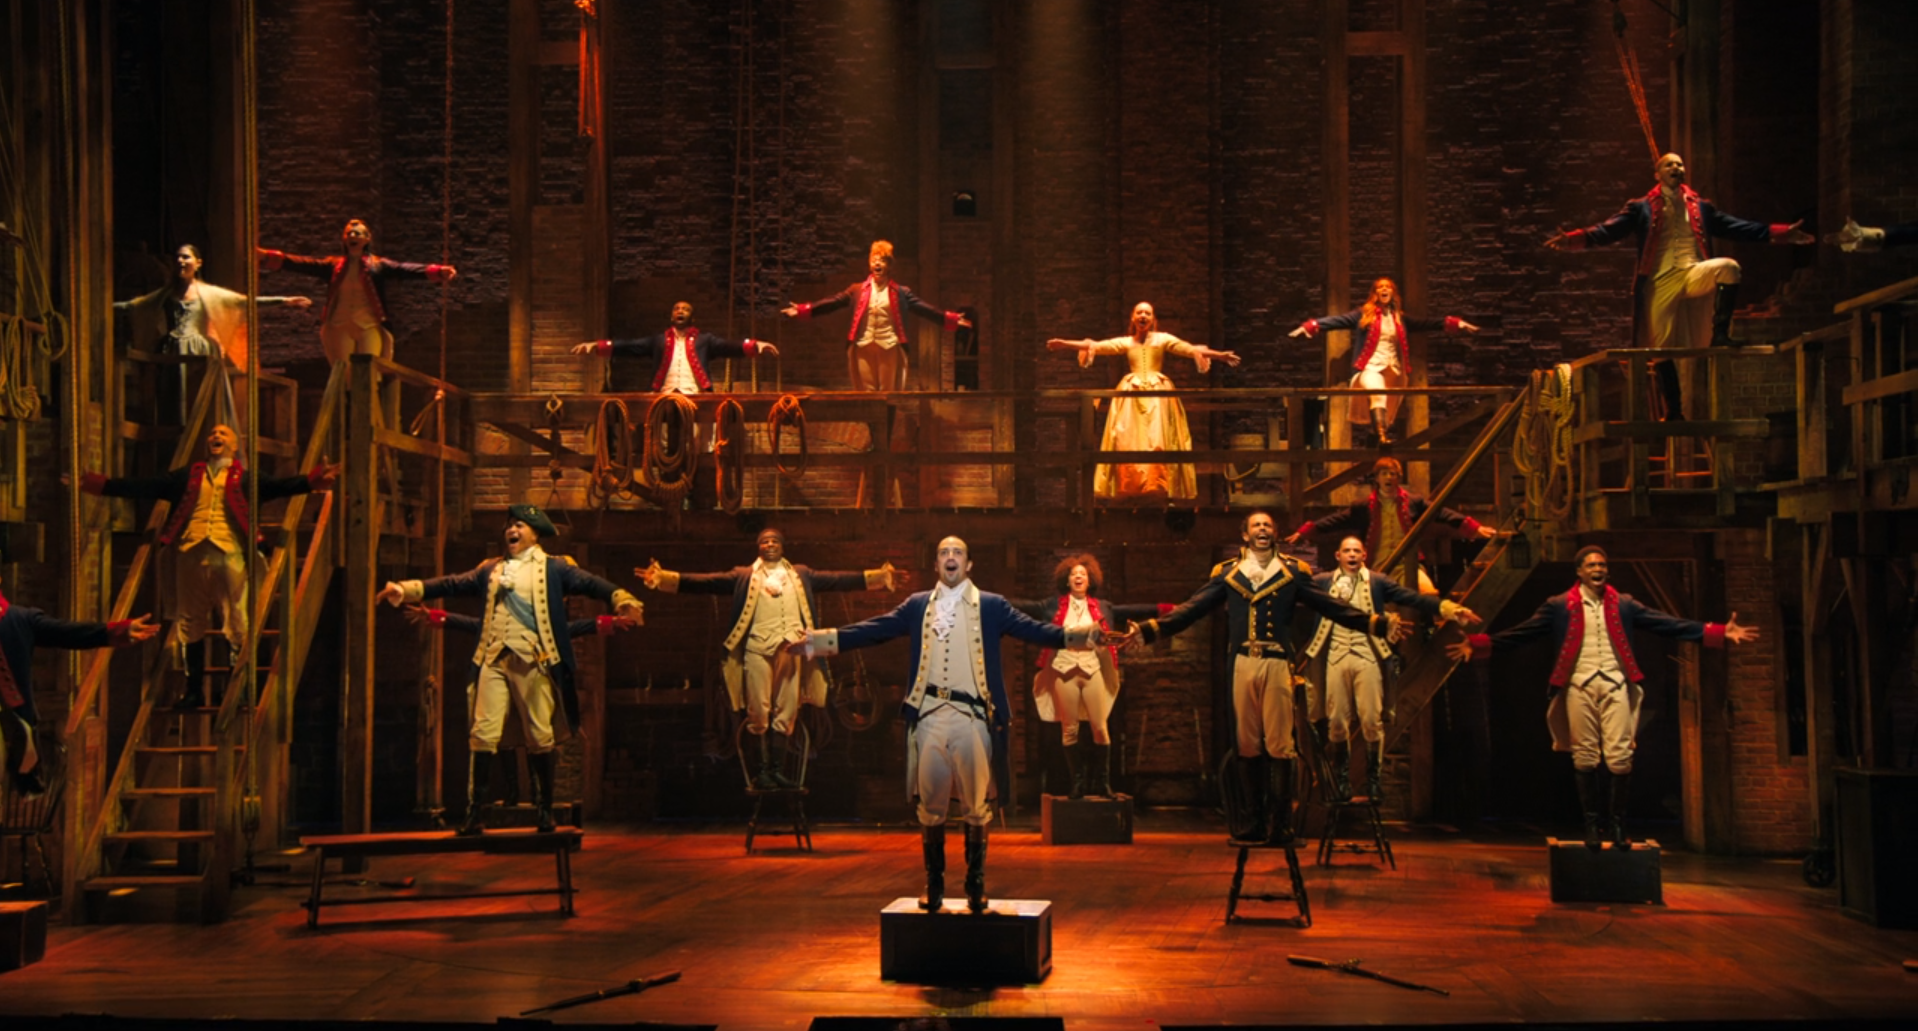 Hamilton musical cast on Disney Plus discussed on the Christian Movie Podcast Cinematic Doctrine with Truce Chris Staron